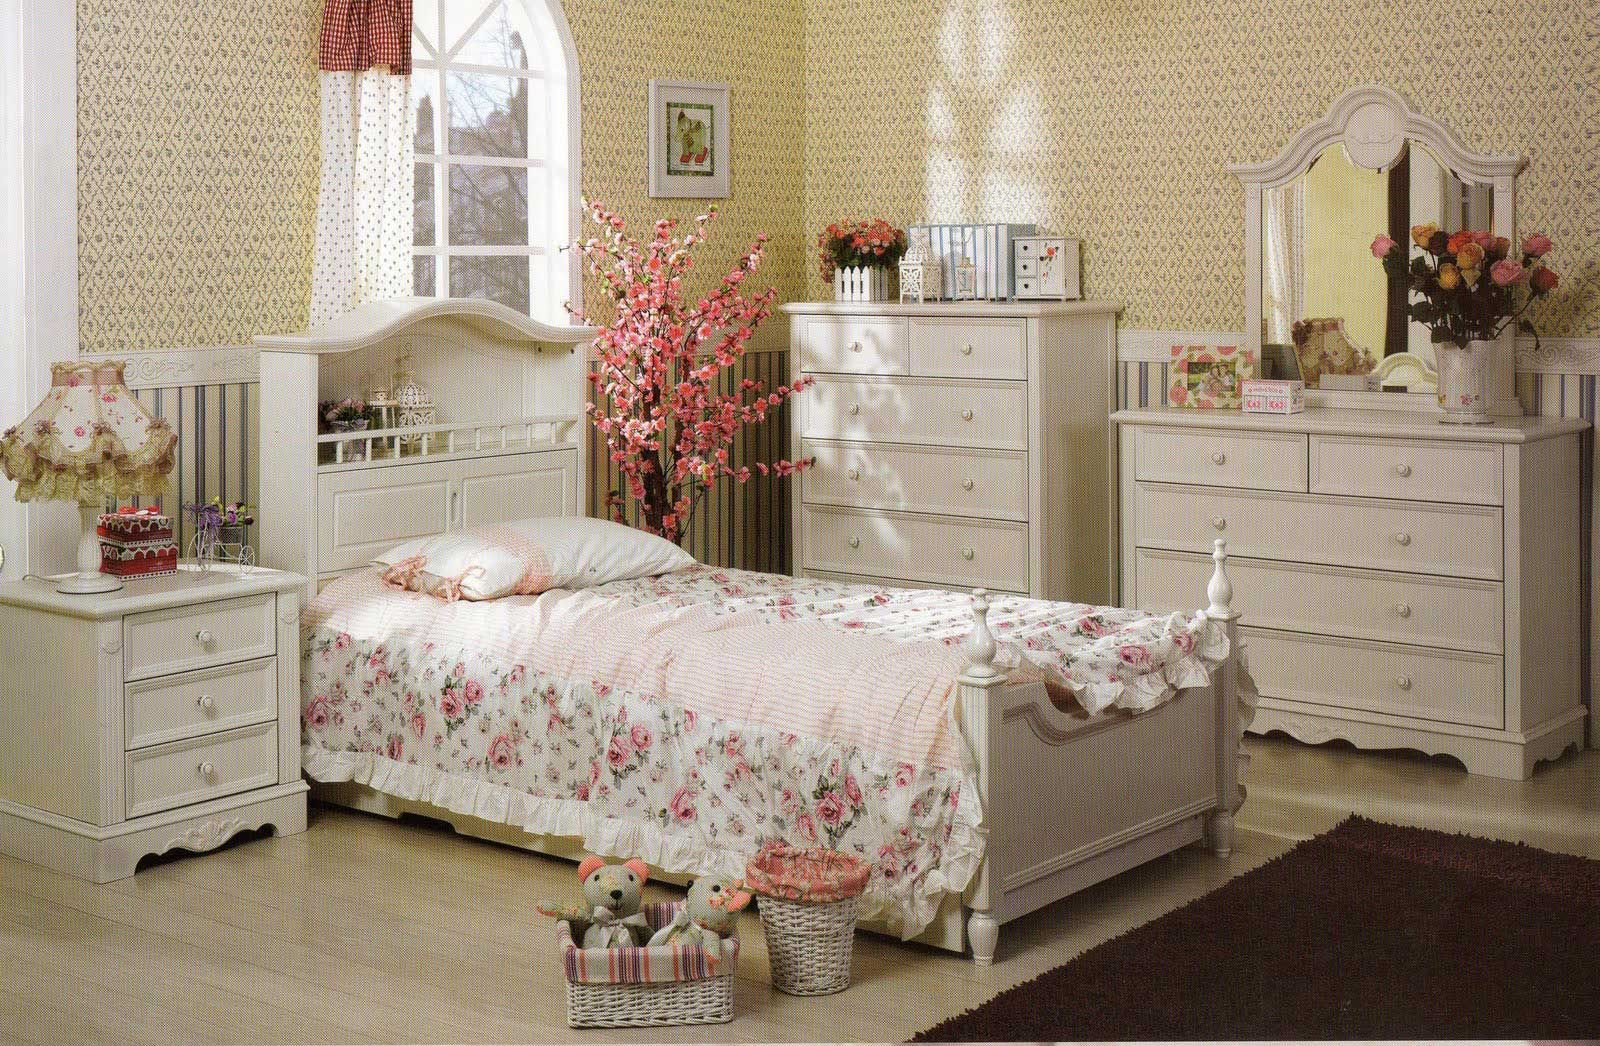 1000 Images About Dormitorios On Pinterest Guest Rooms Bedroom. Benson Beds Headboards   Headboard Designs